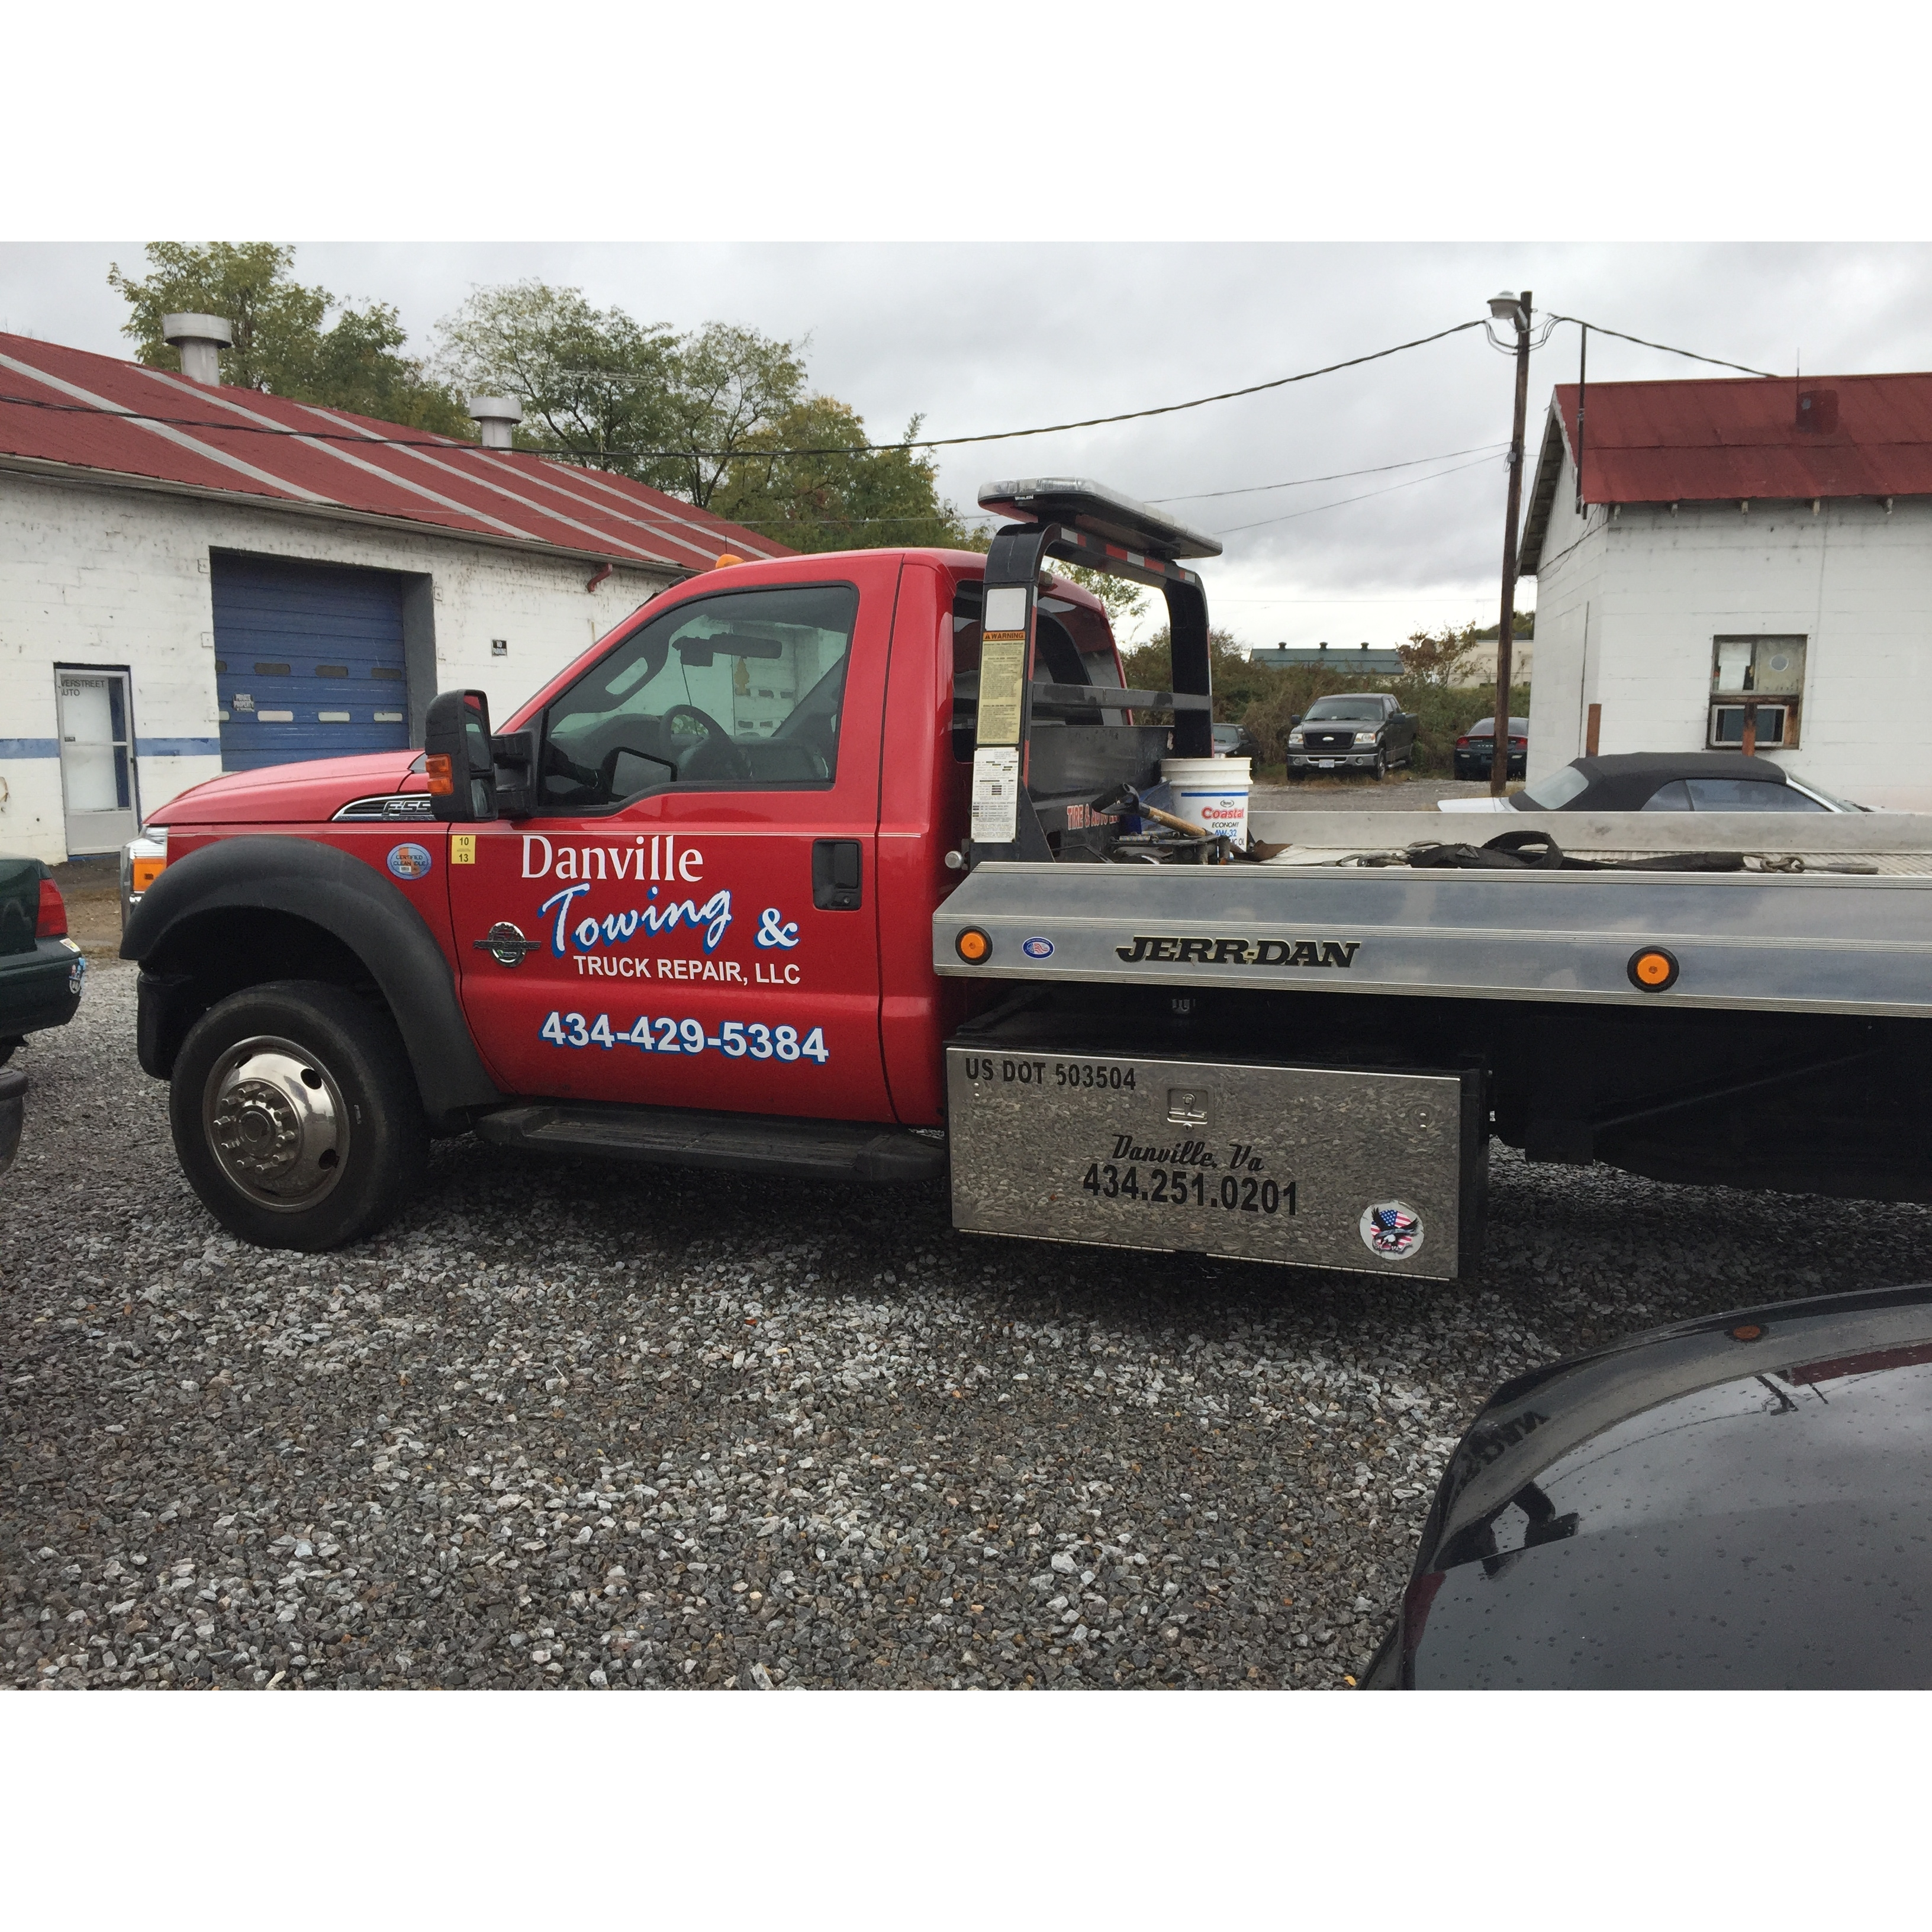 Danville Towing Truck Repair